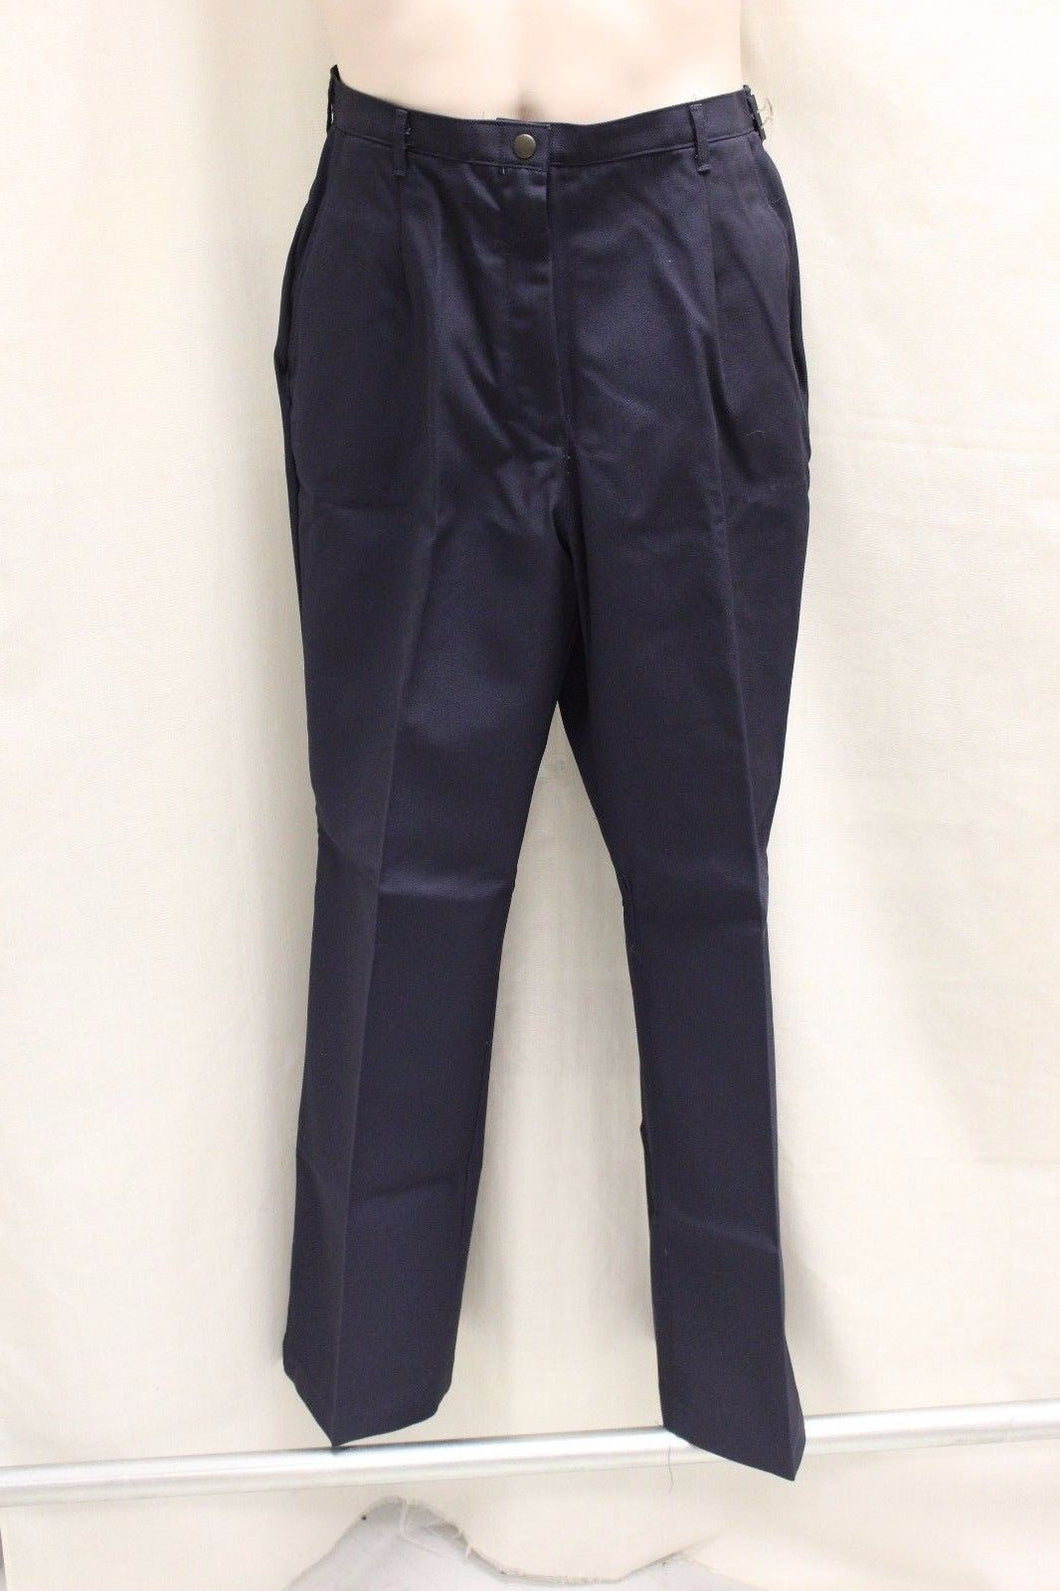 US Military DSCP Quarterdeck Women's Slacks, Size: 14WP x 29, Navy Blue, NEW!